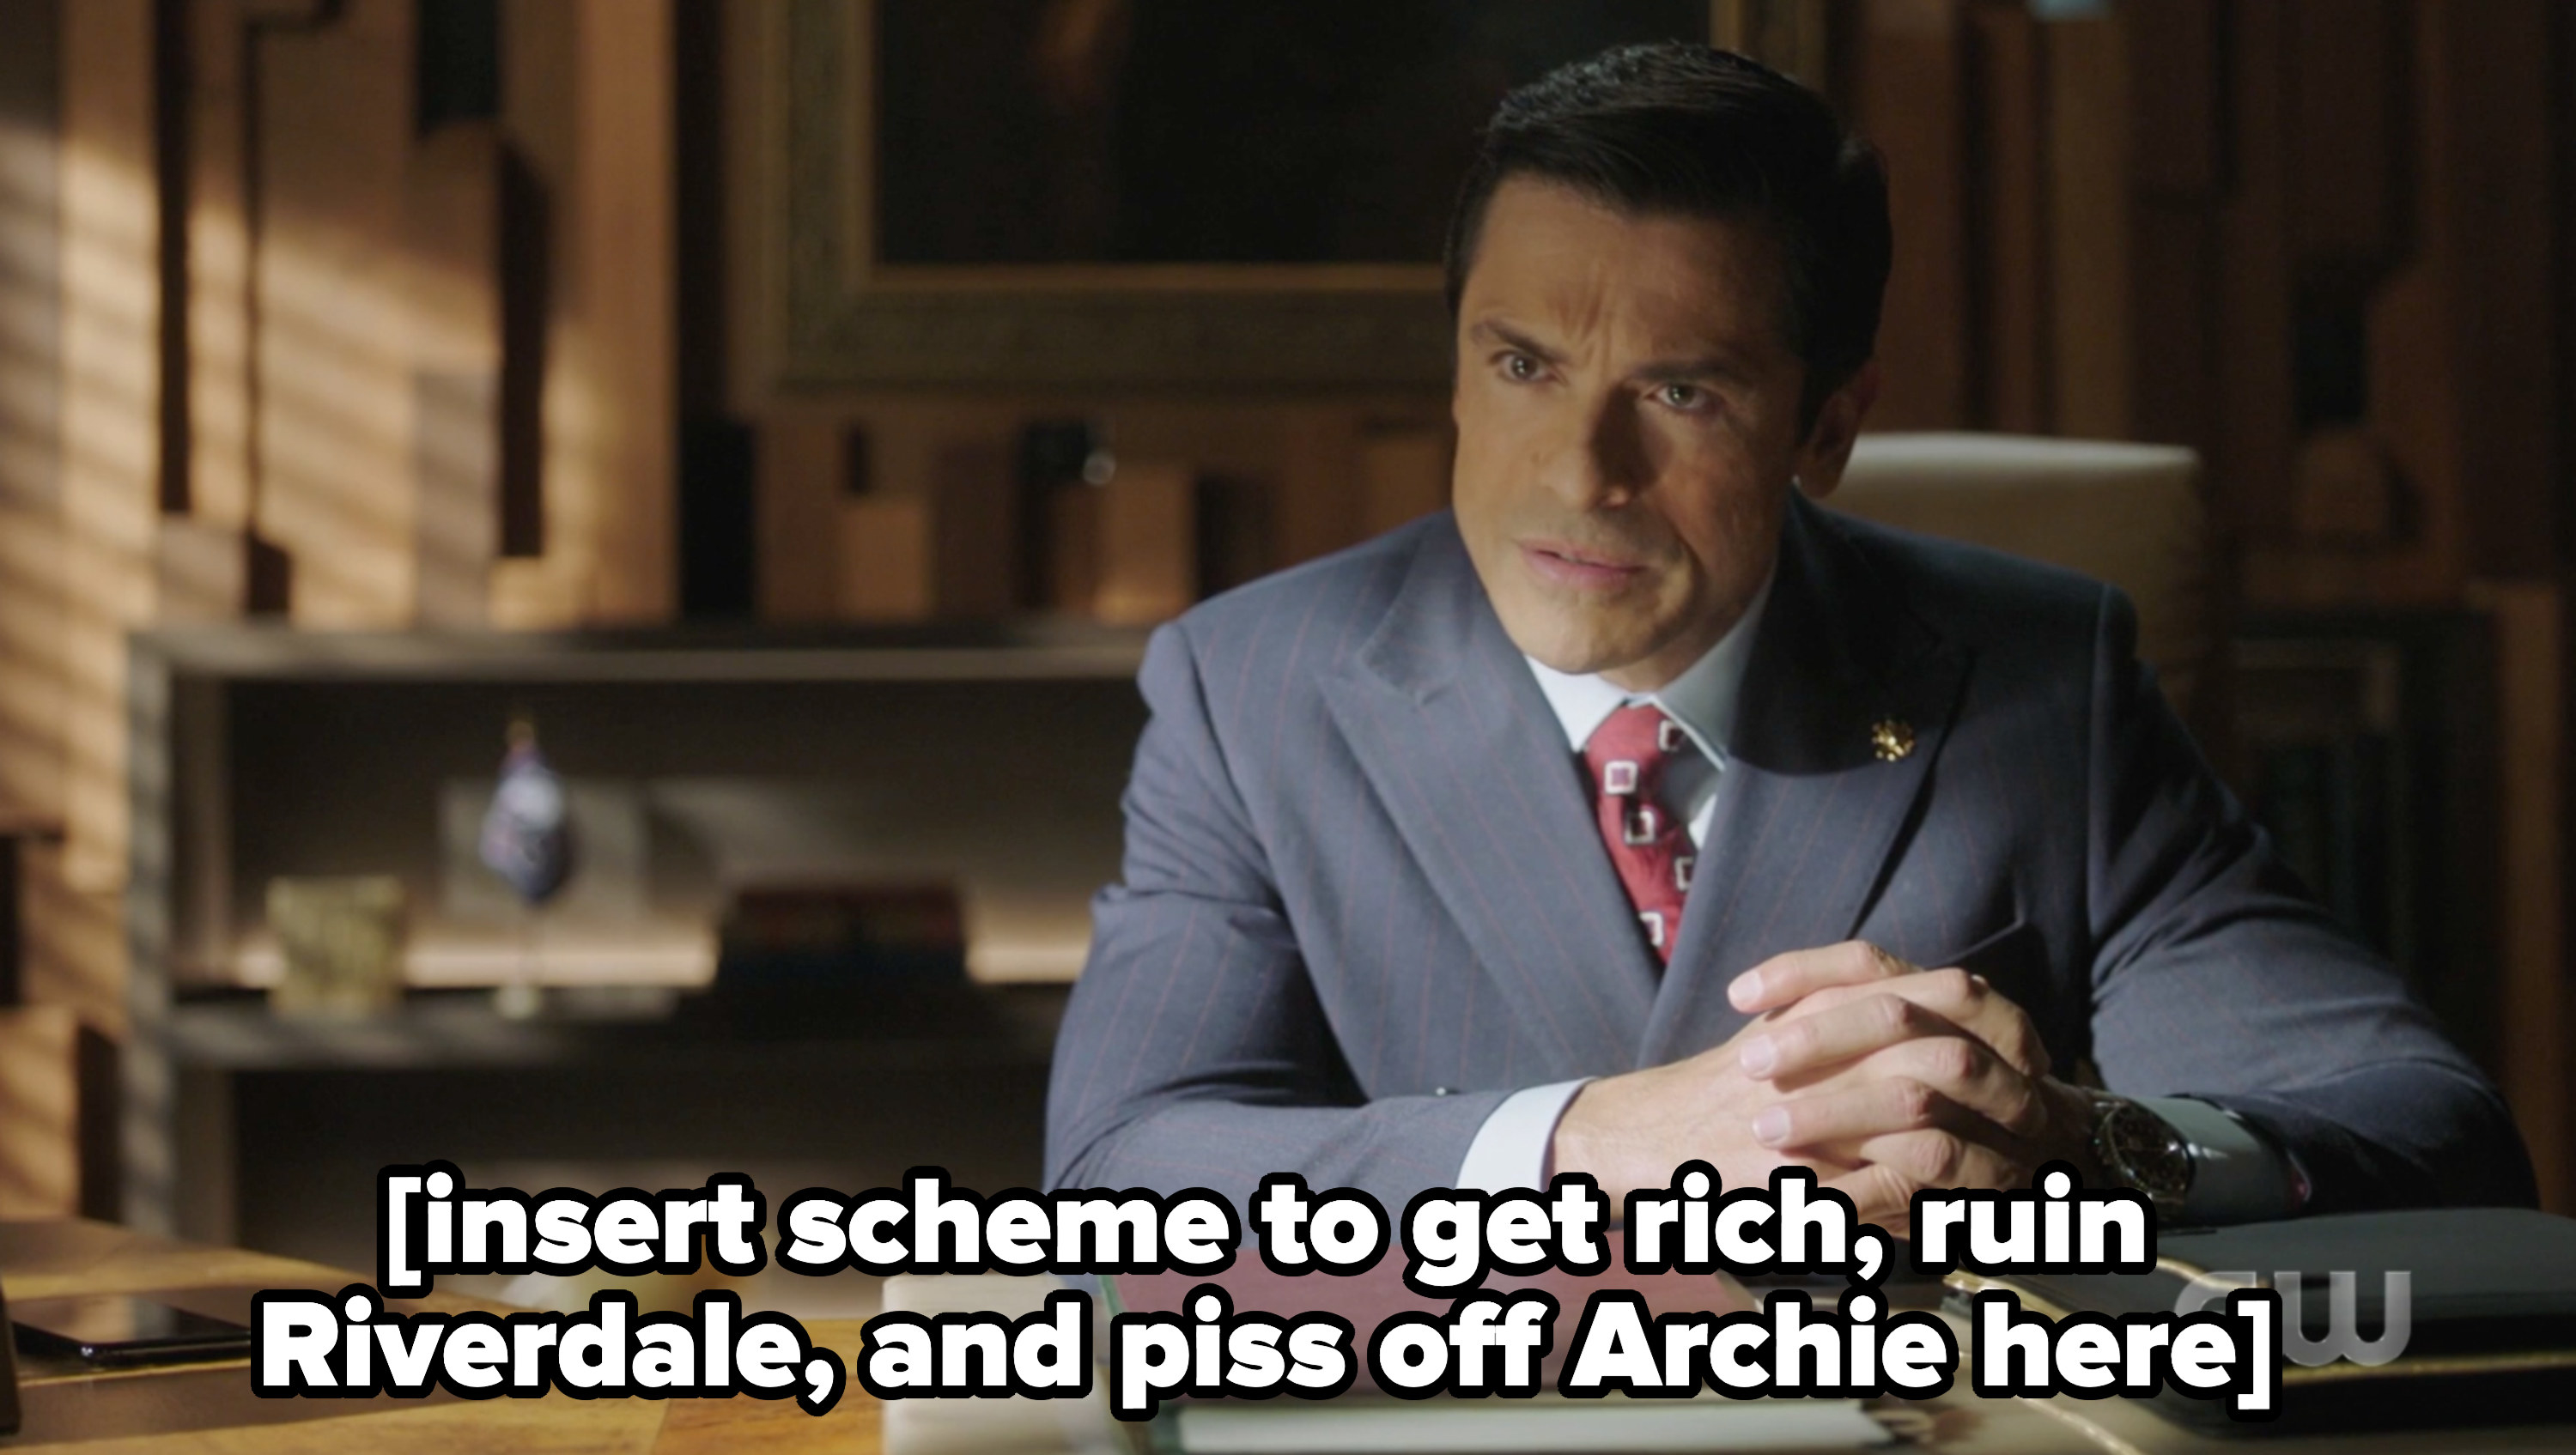 Hiram with the caption insert scheme to get rich, ruin Riverdale, and piss off Archie here